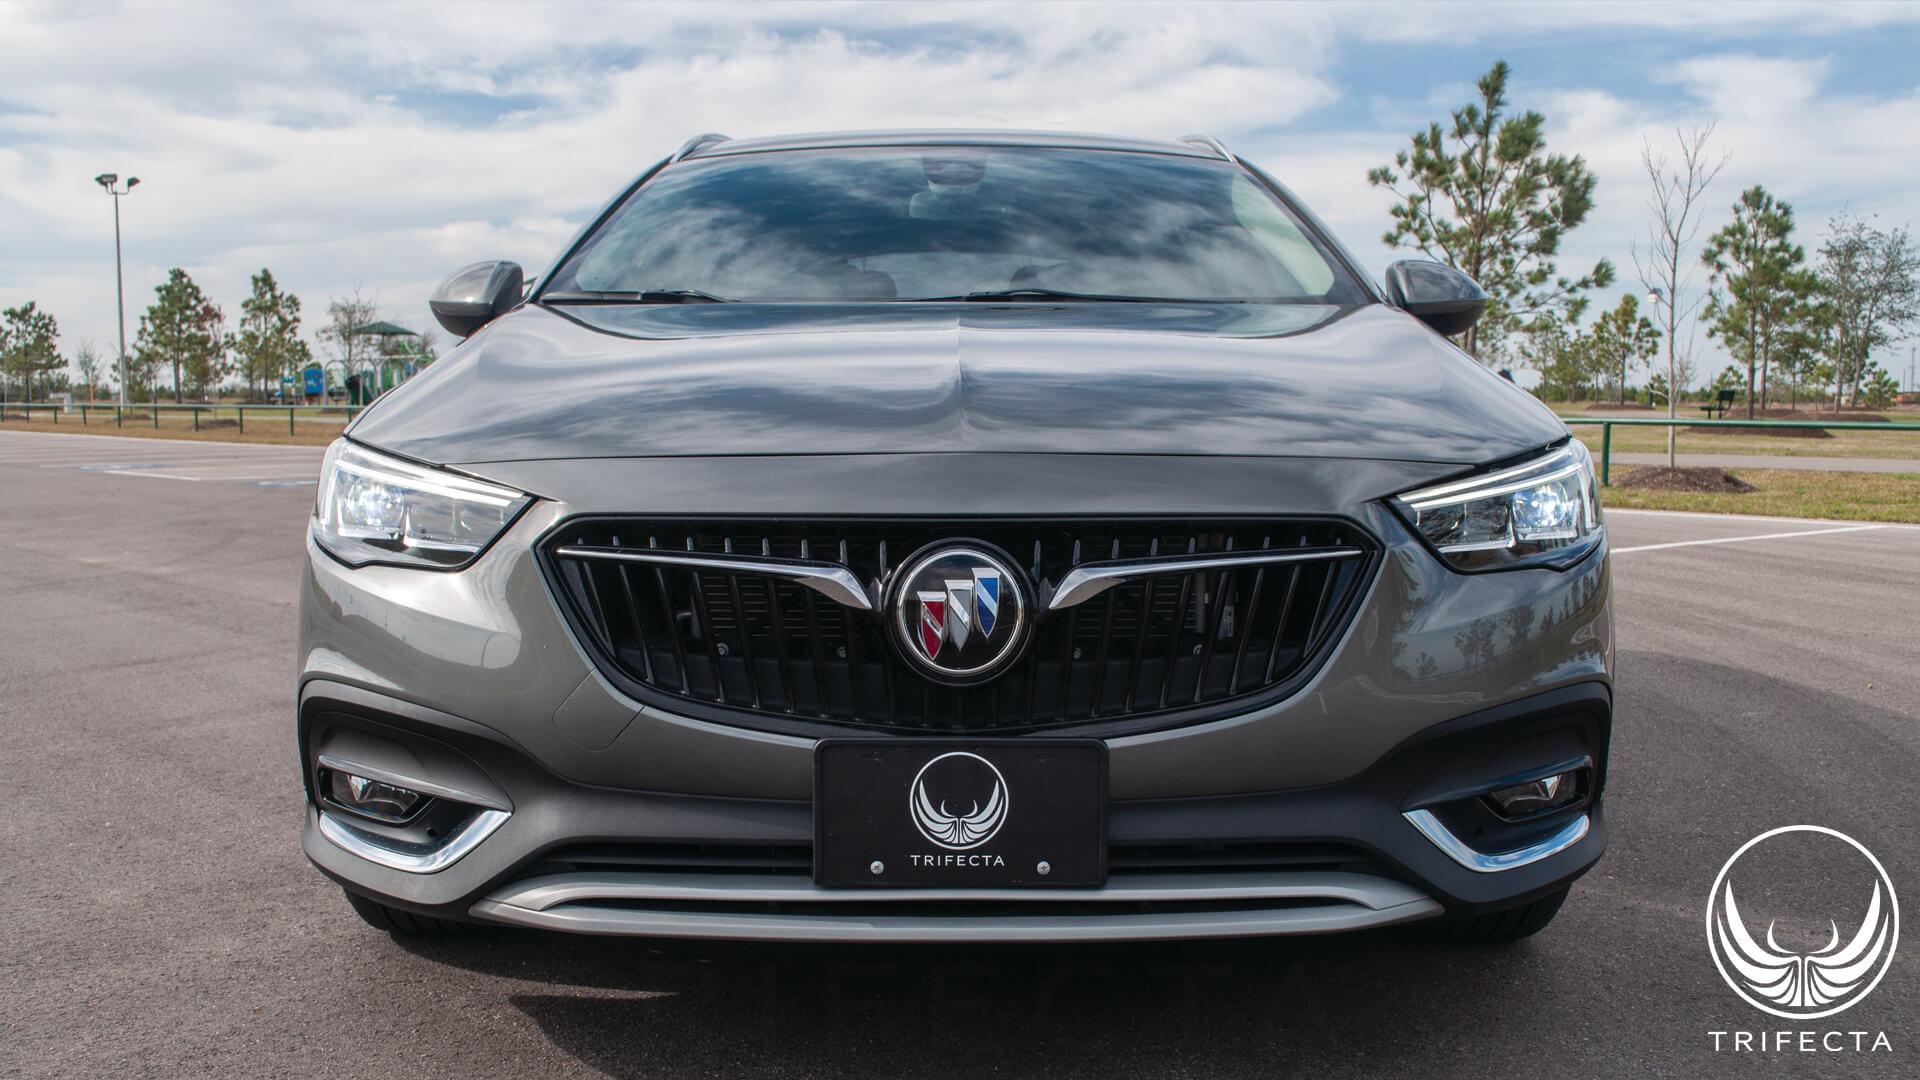 Product Review: 2018--2020 Buick Regal - 2.0L Turbo - Advantage